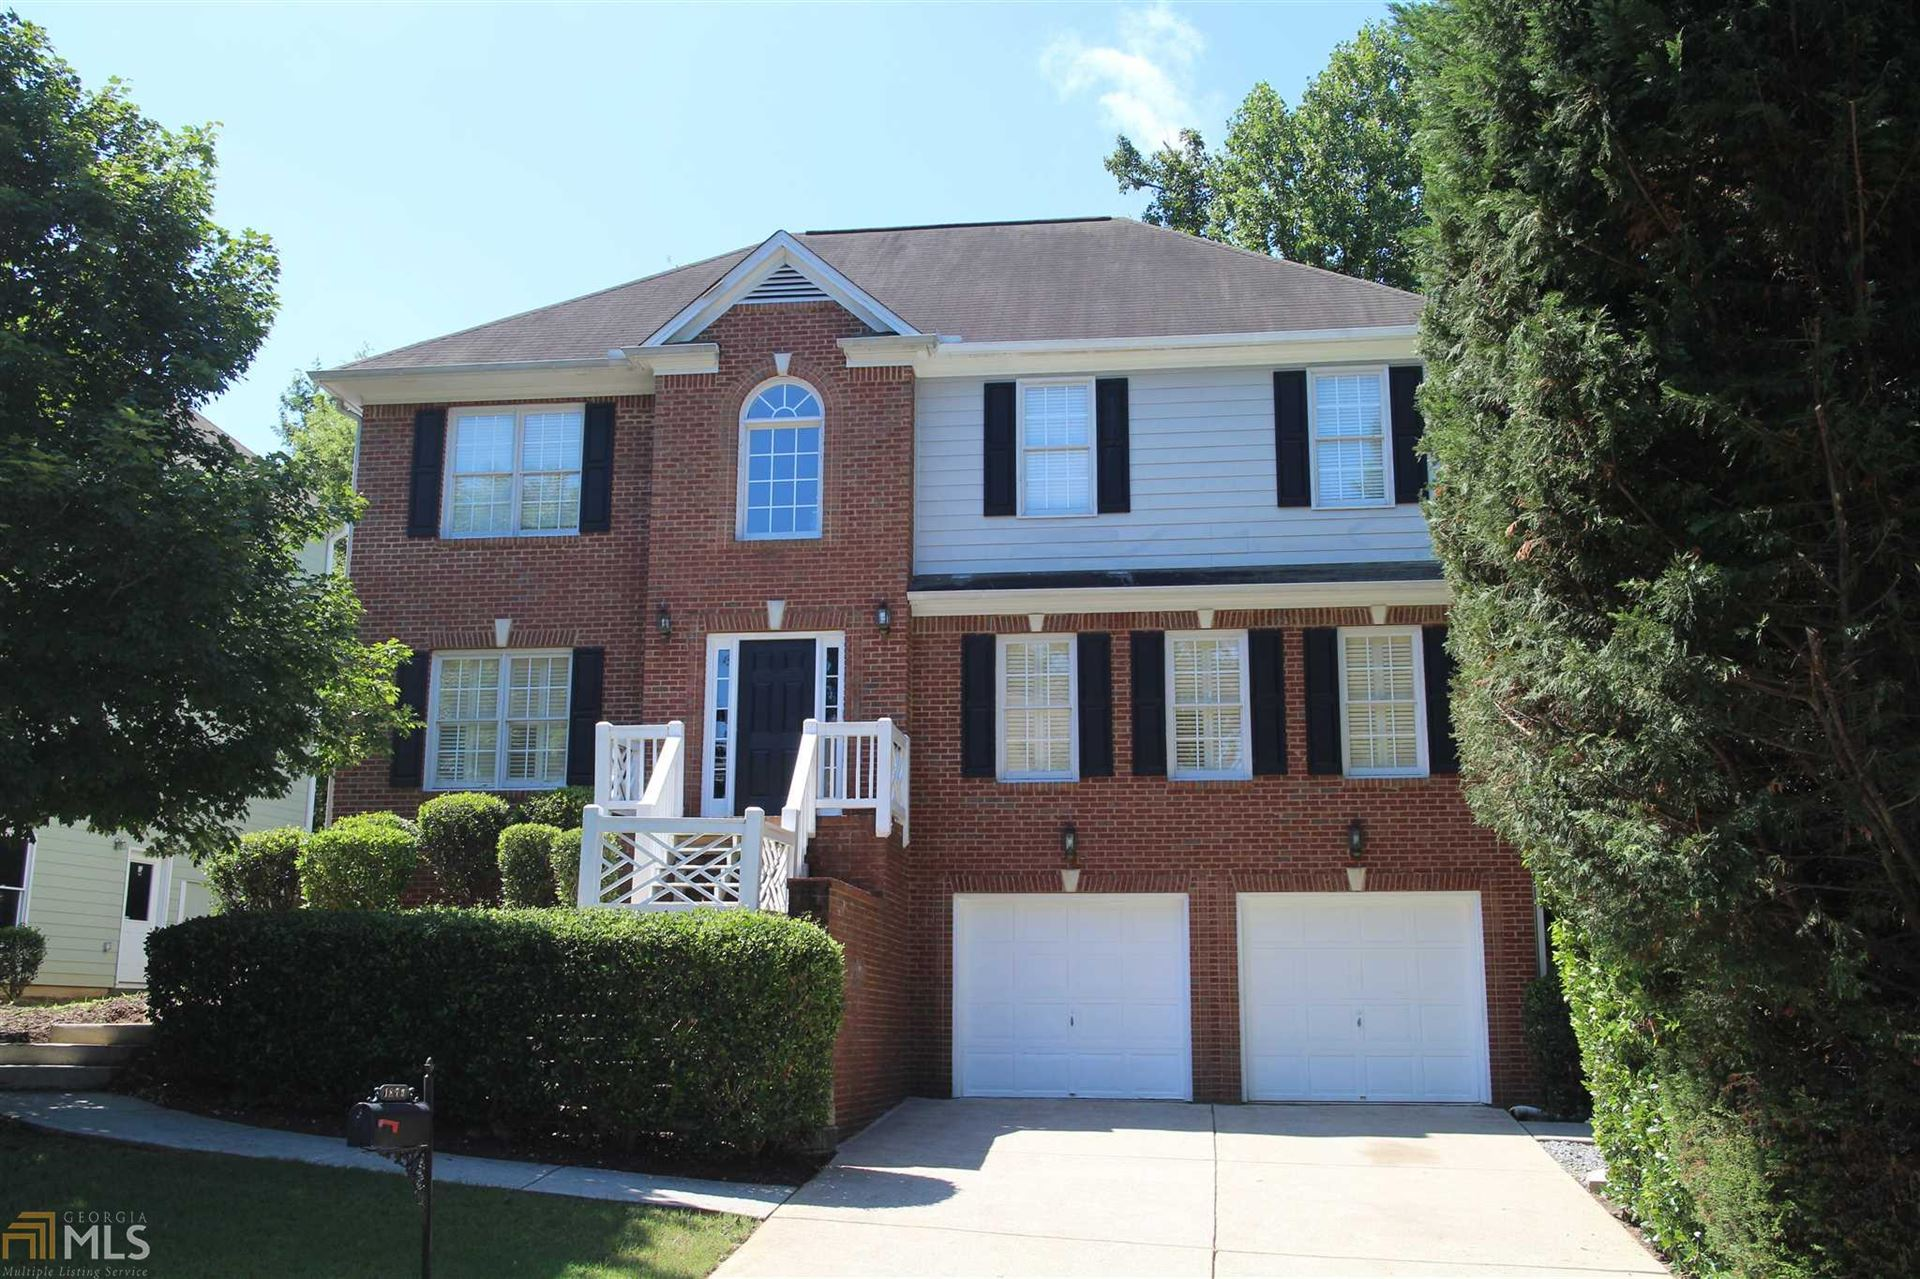 1879 Nw Shiloh Valley Way, Kennesaw, GA 30144 - #: 8816858